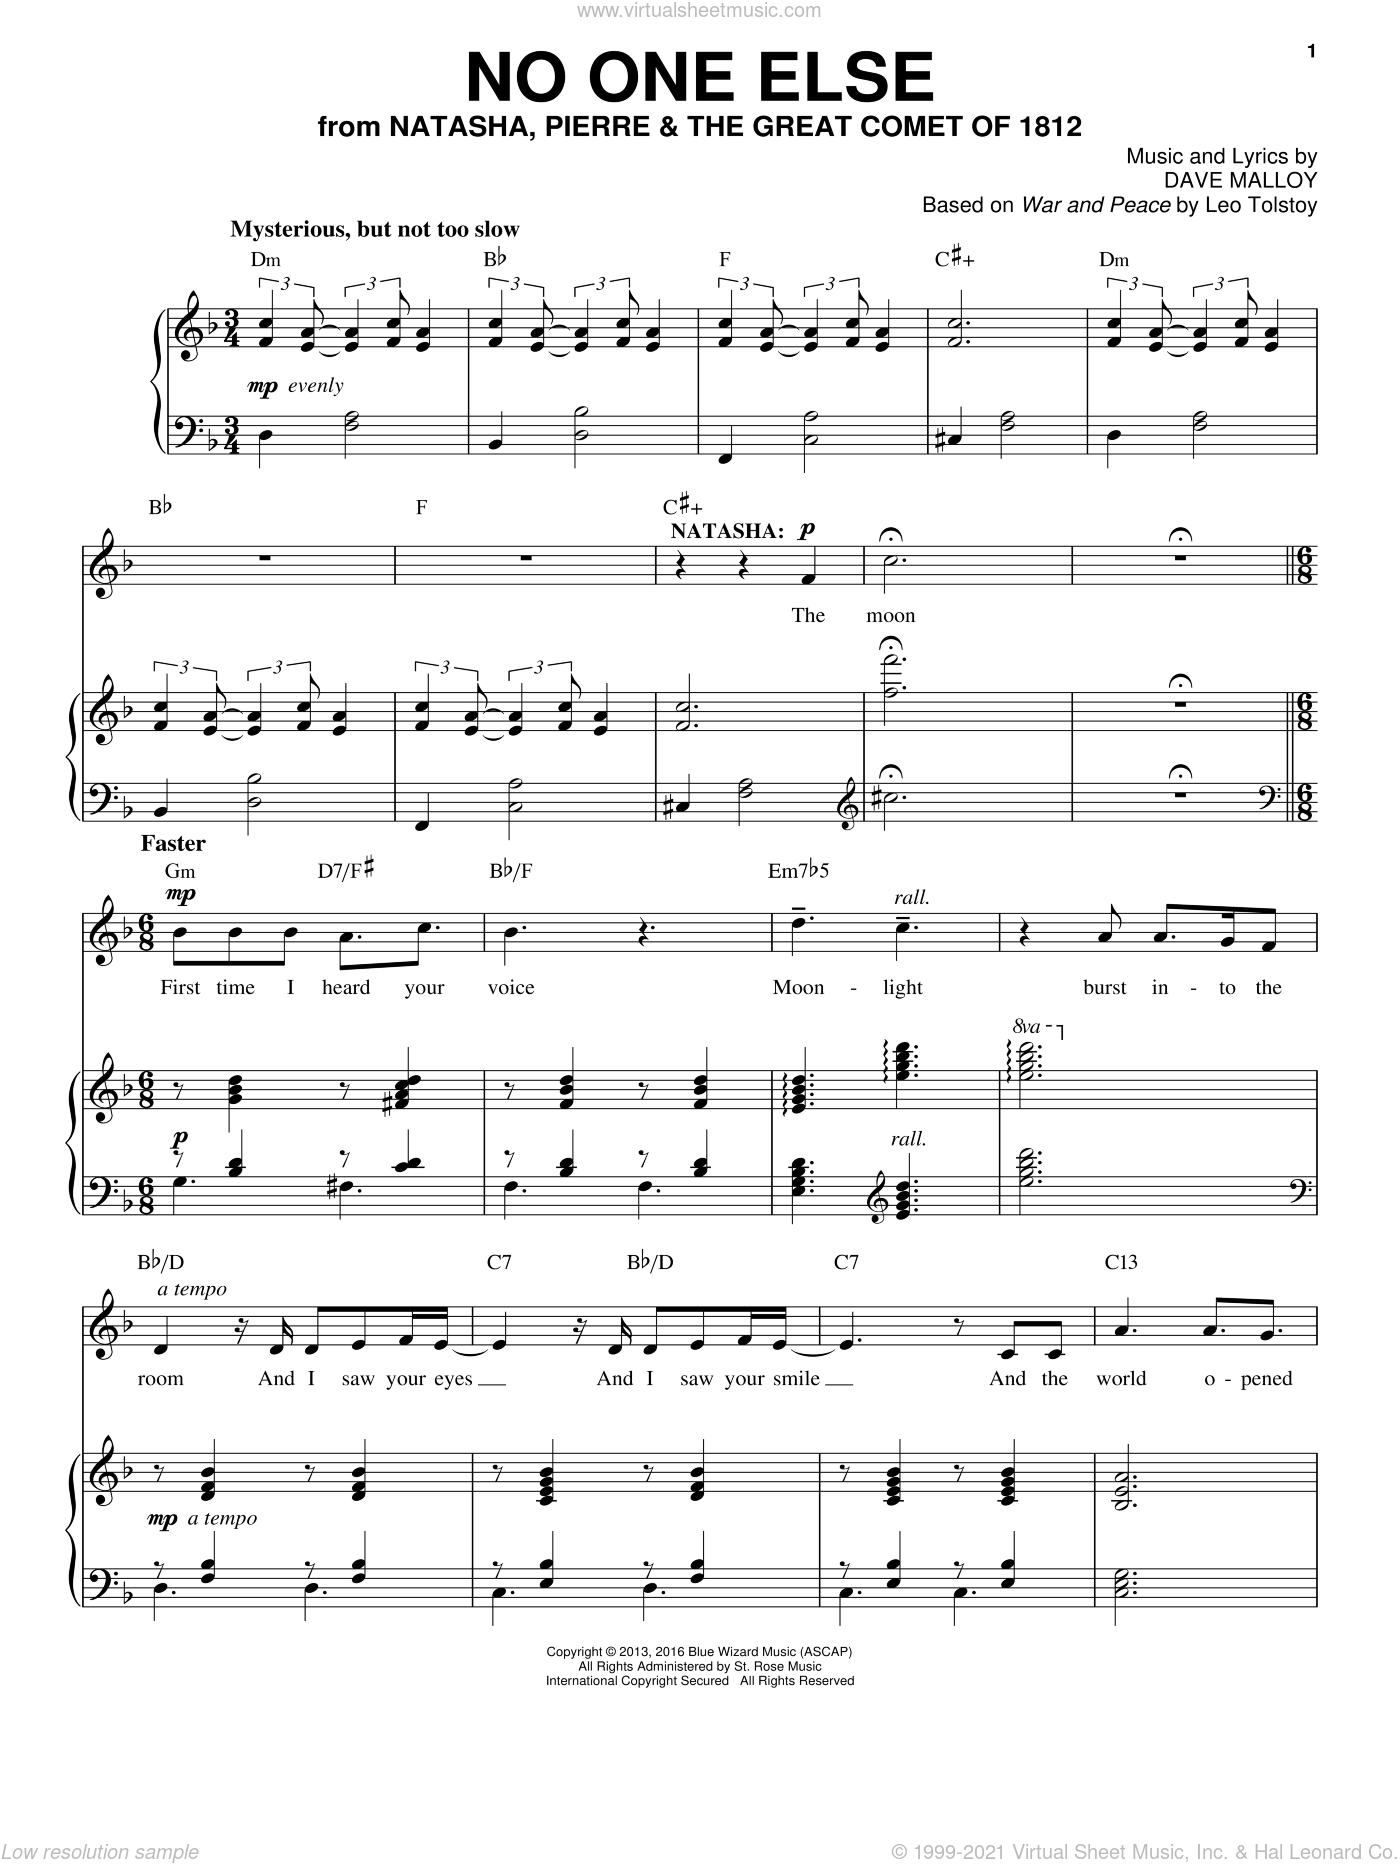 No One Else sheet music for voice and piano by Denée Benton, Josh Groban and Dave Malloy, intermediate skill level